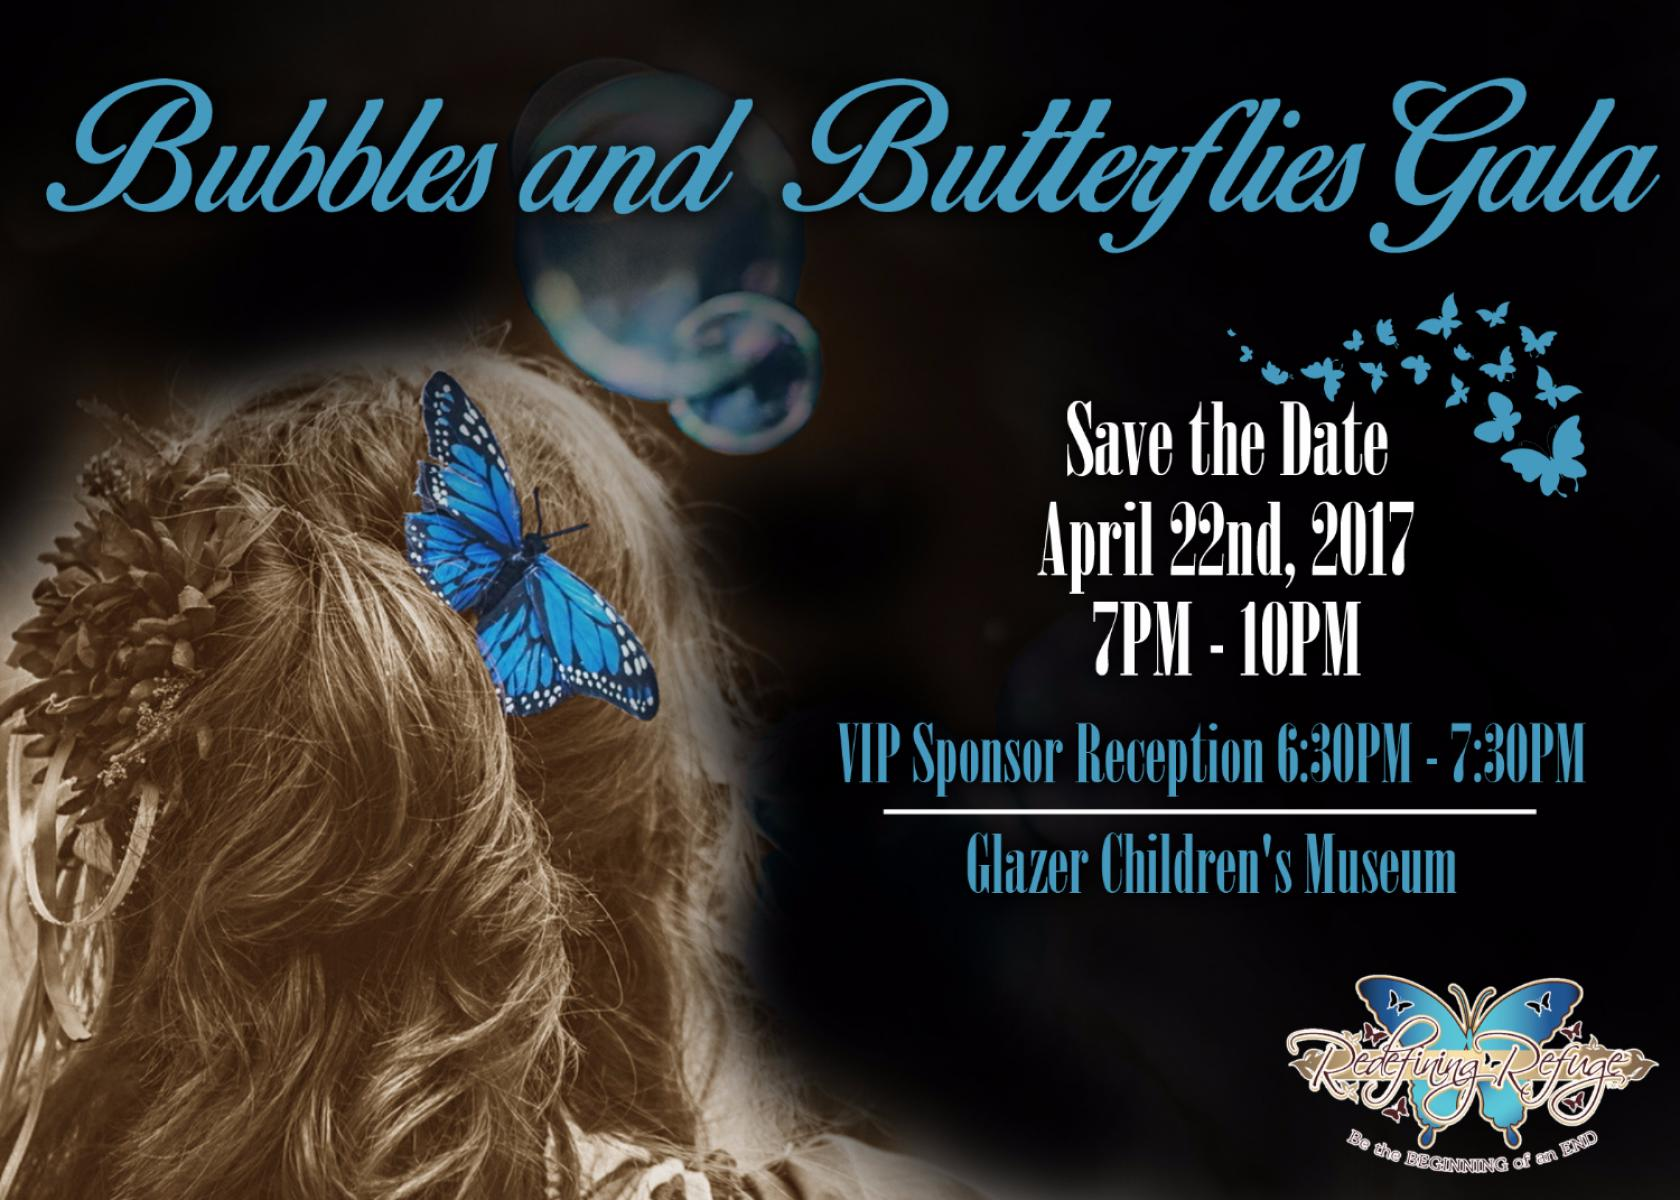 6th Annual Bubbles and Butterflies Gala